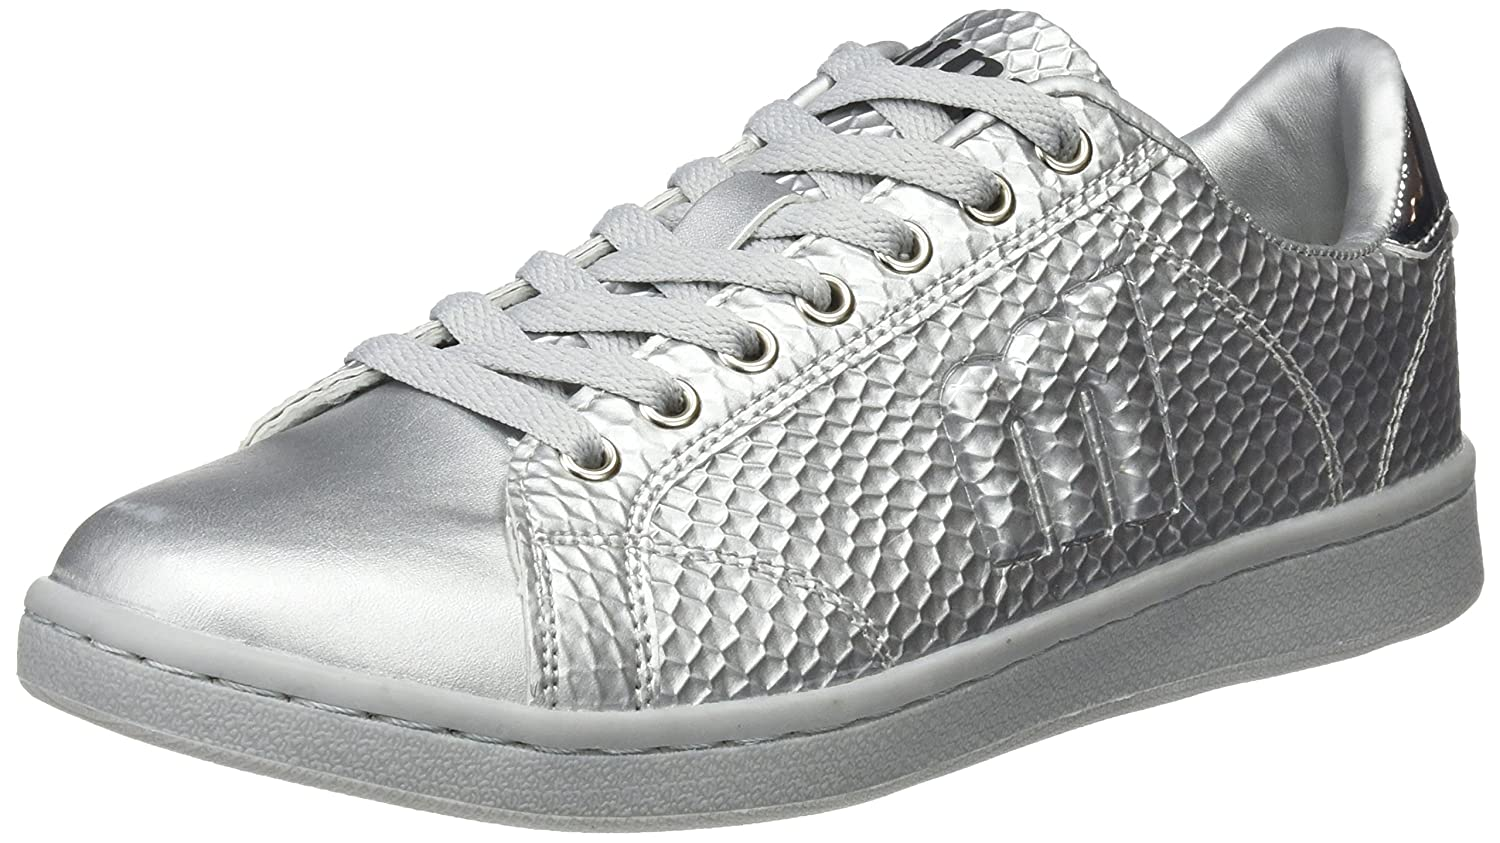 Marques Chaussure femme MTNG femme Agasi Ball plata